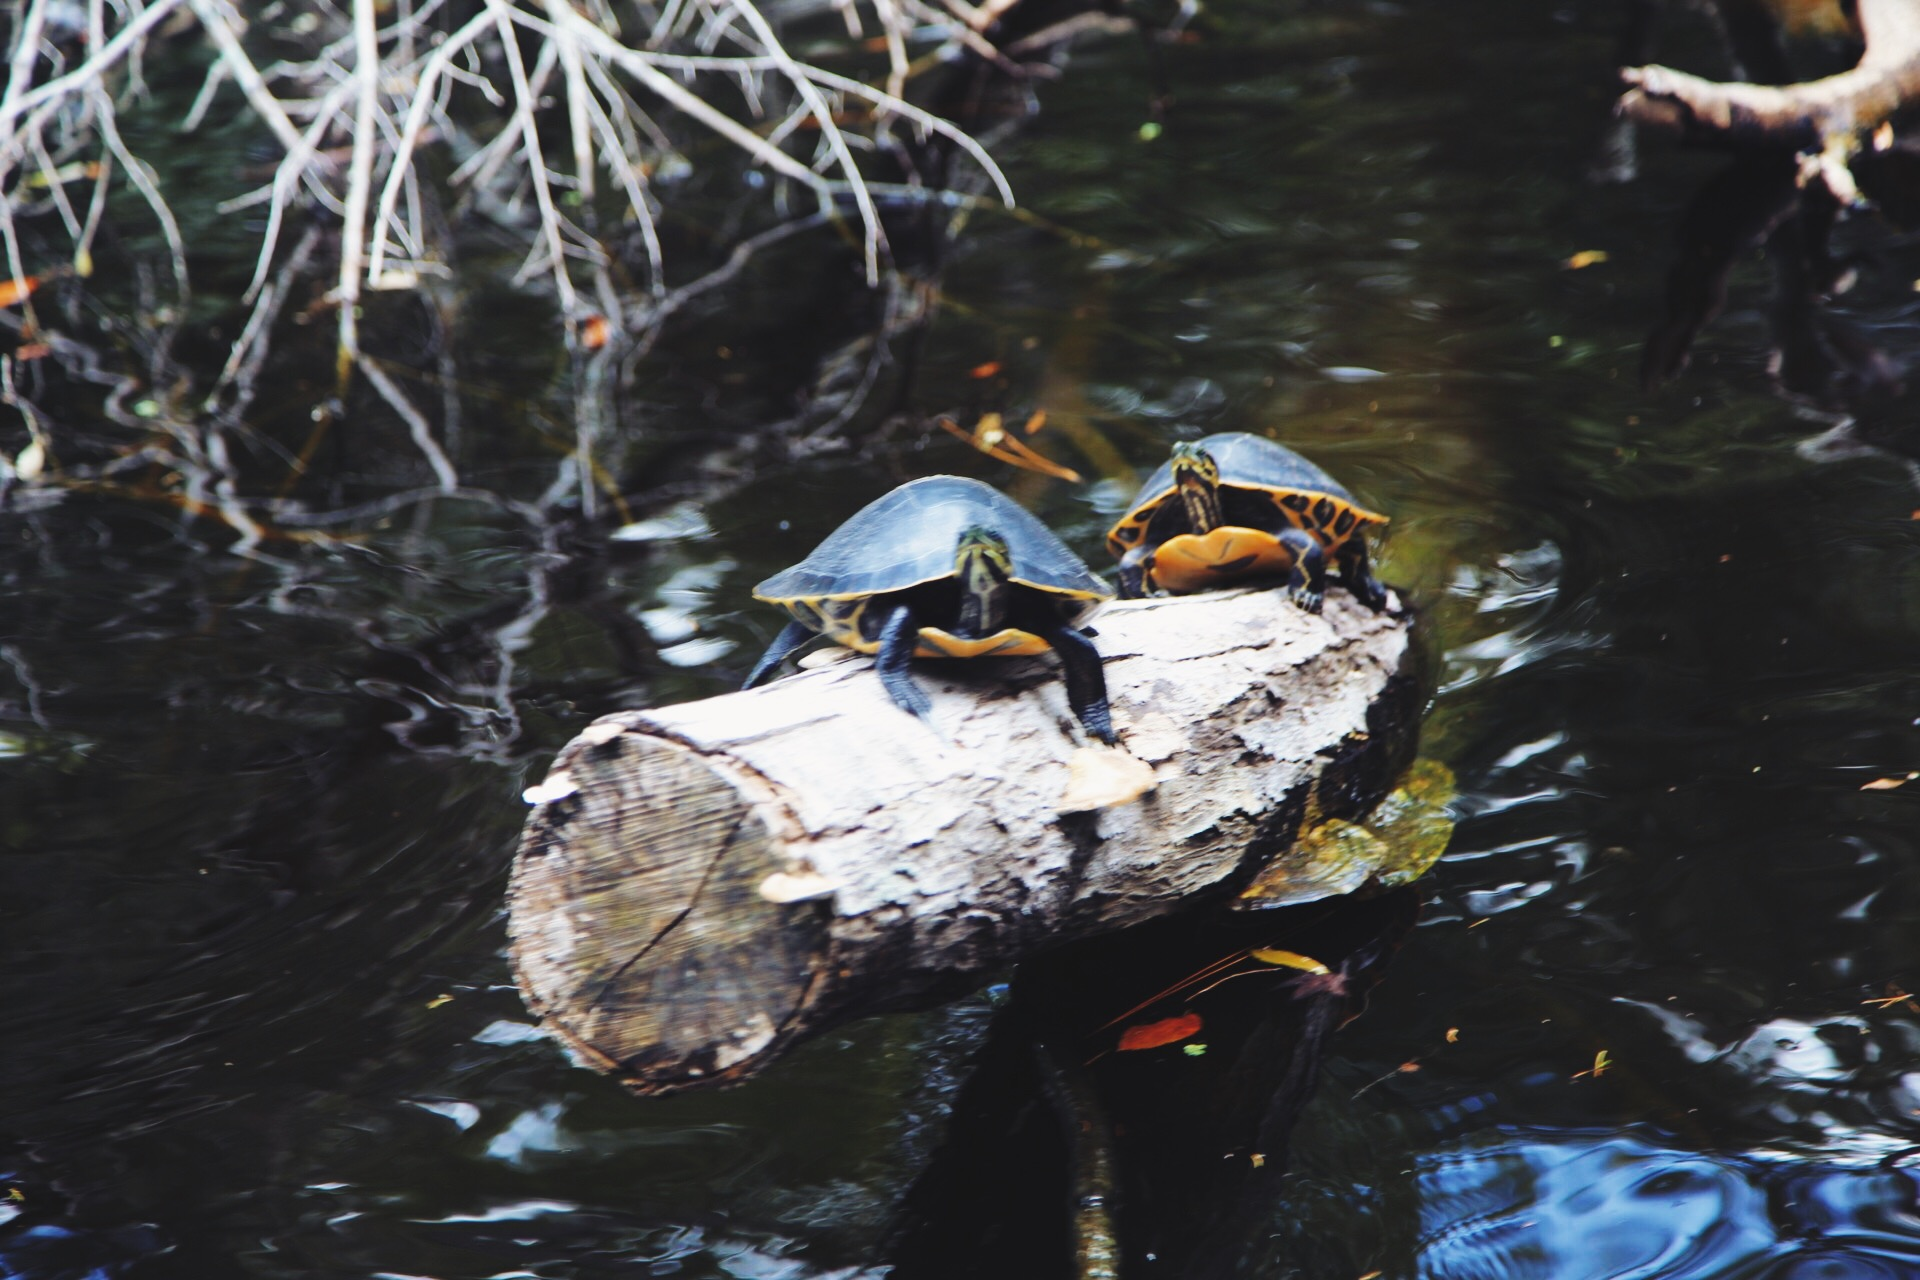 Check out5 Reasons to Visit Homosassa Springs State Park at MoreDetours.com